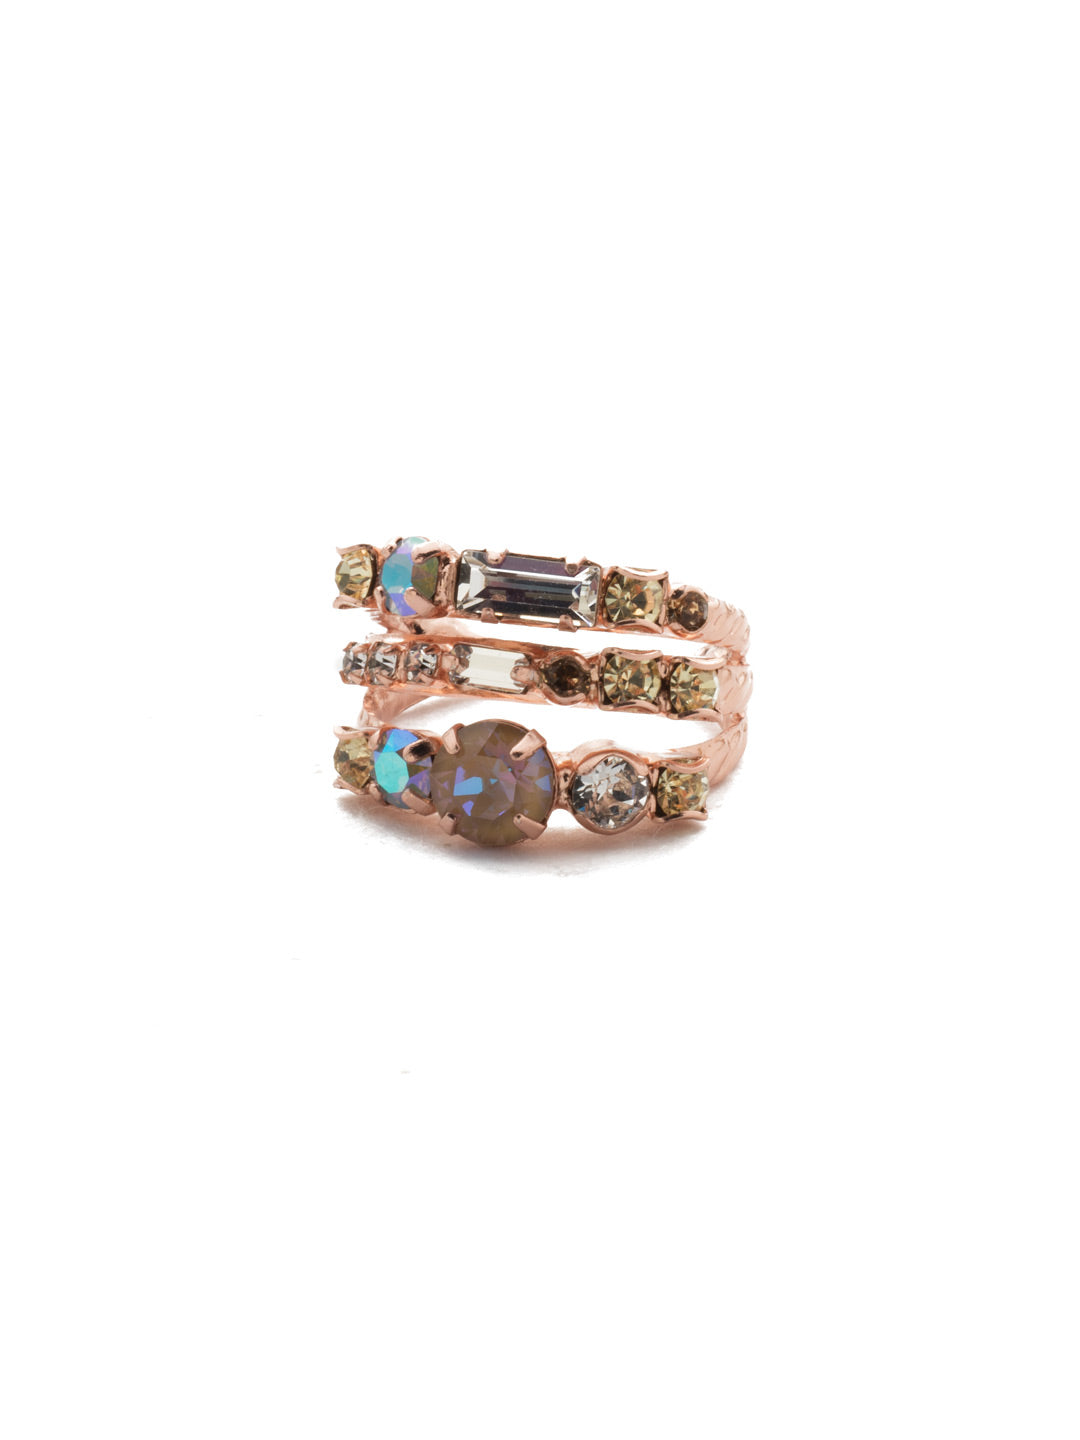 Triple Threat Stacked Ring - RDK23RGROG